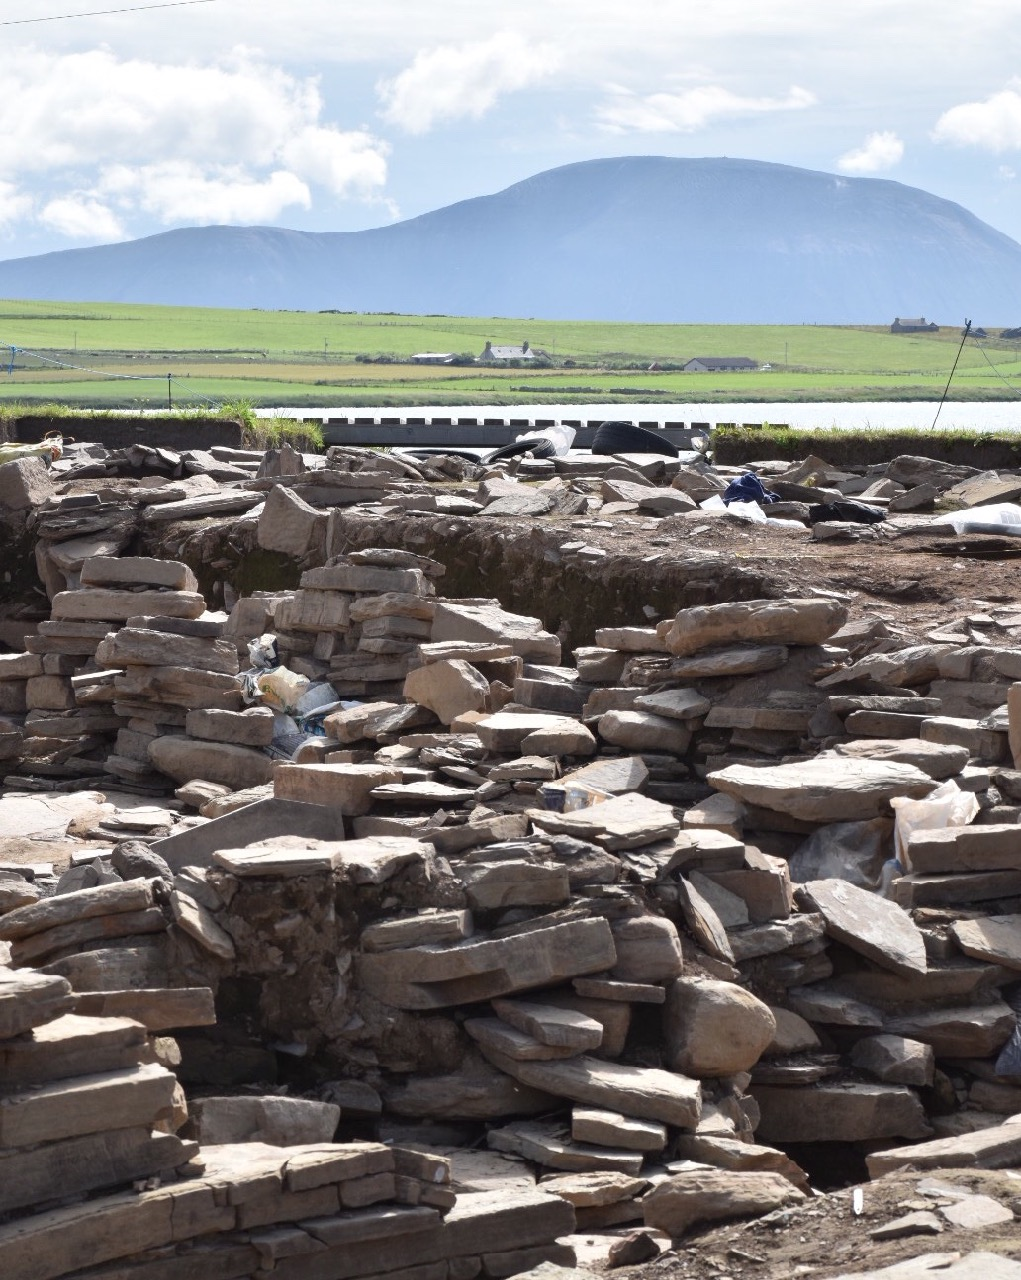 The hills of Hoy seen from the Ness of Brodgar dig